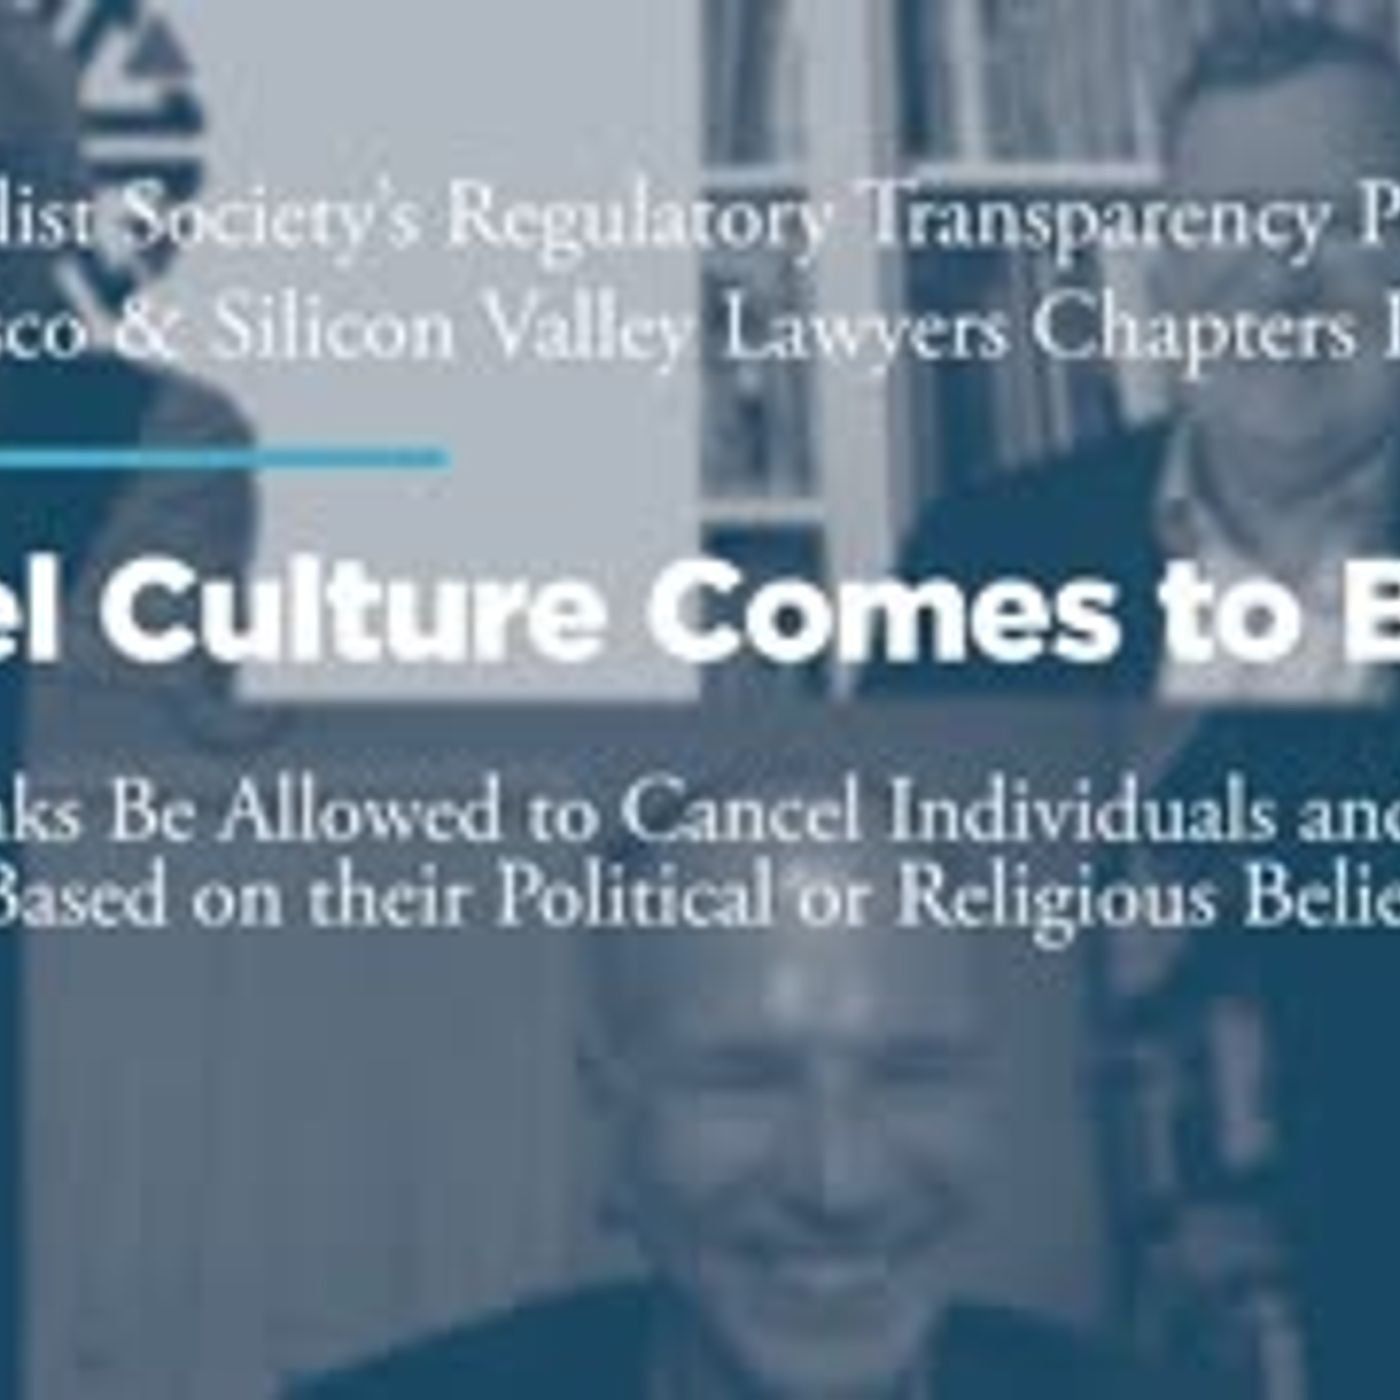 Cancel Culture Comes to Bank: Should Banks Be Allowed to Cancel Individuals and Industries Based on their Political or Religious Beliefs?